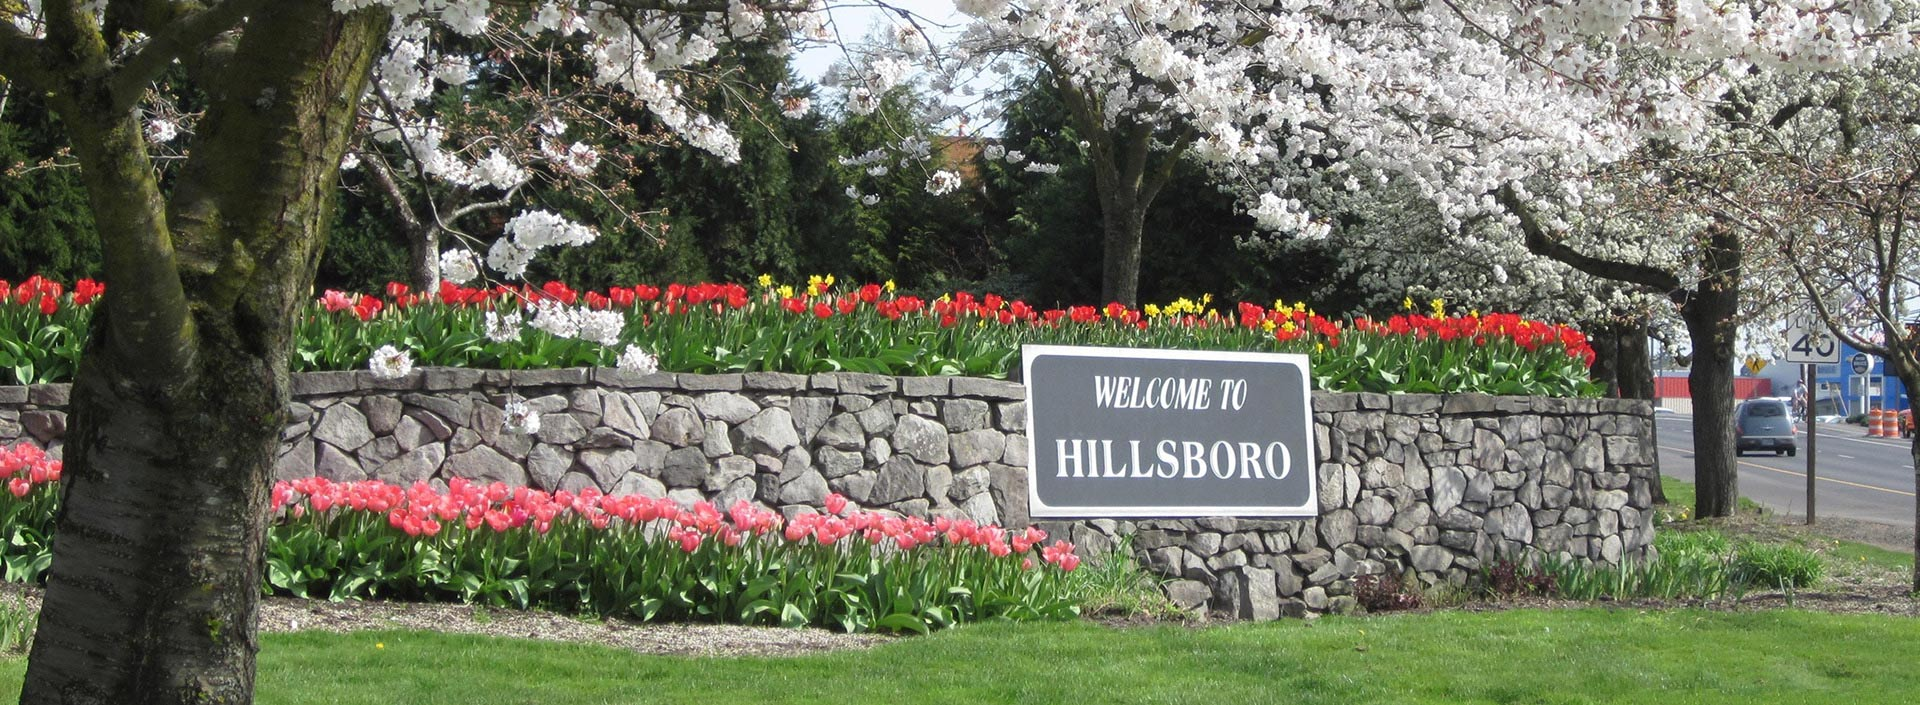 City of Hillsboro welcome sign